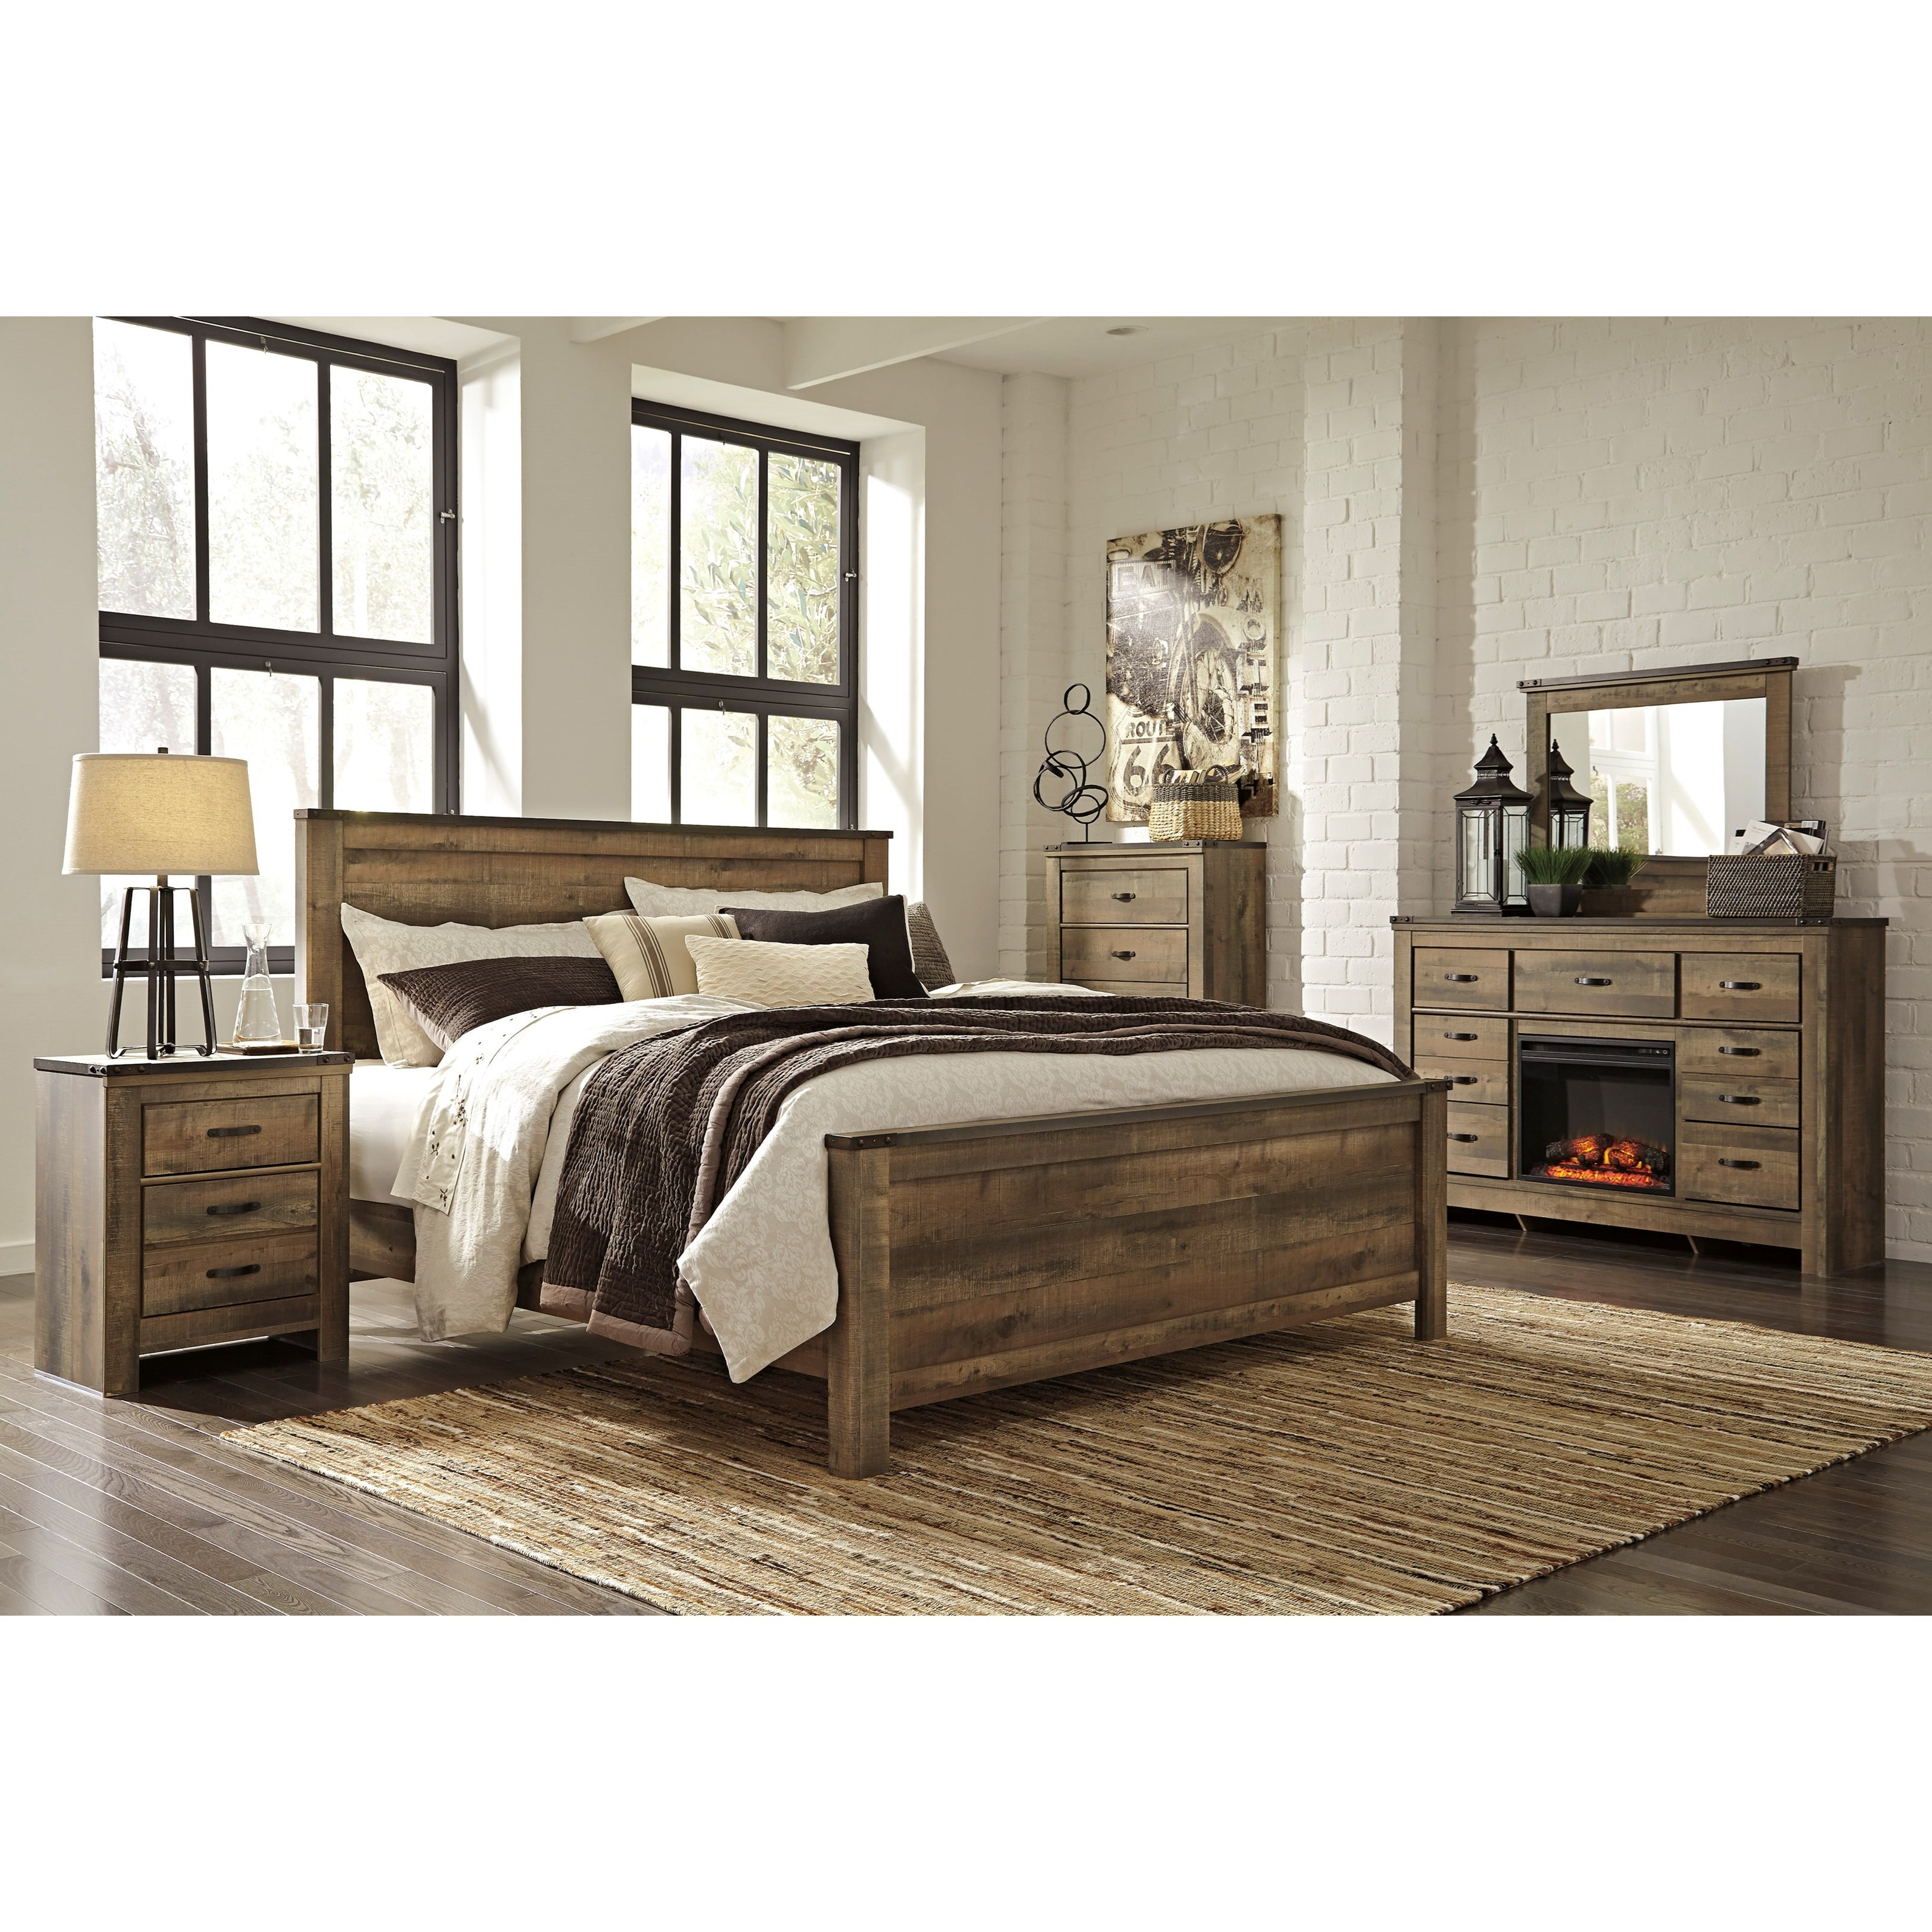 Signature Design by Ashley Trinell King Bedroom Group